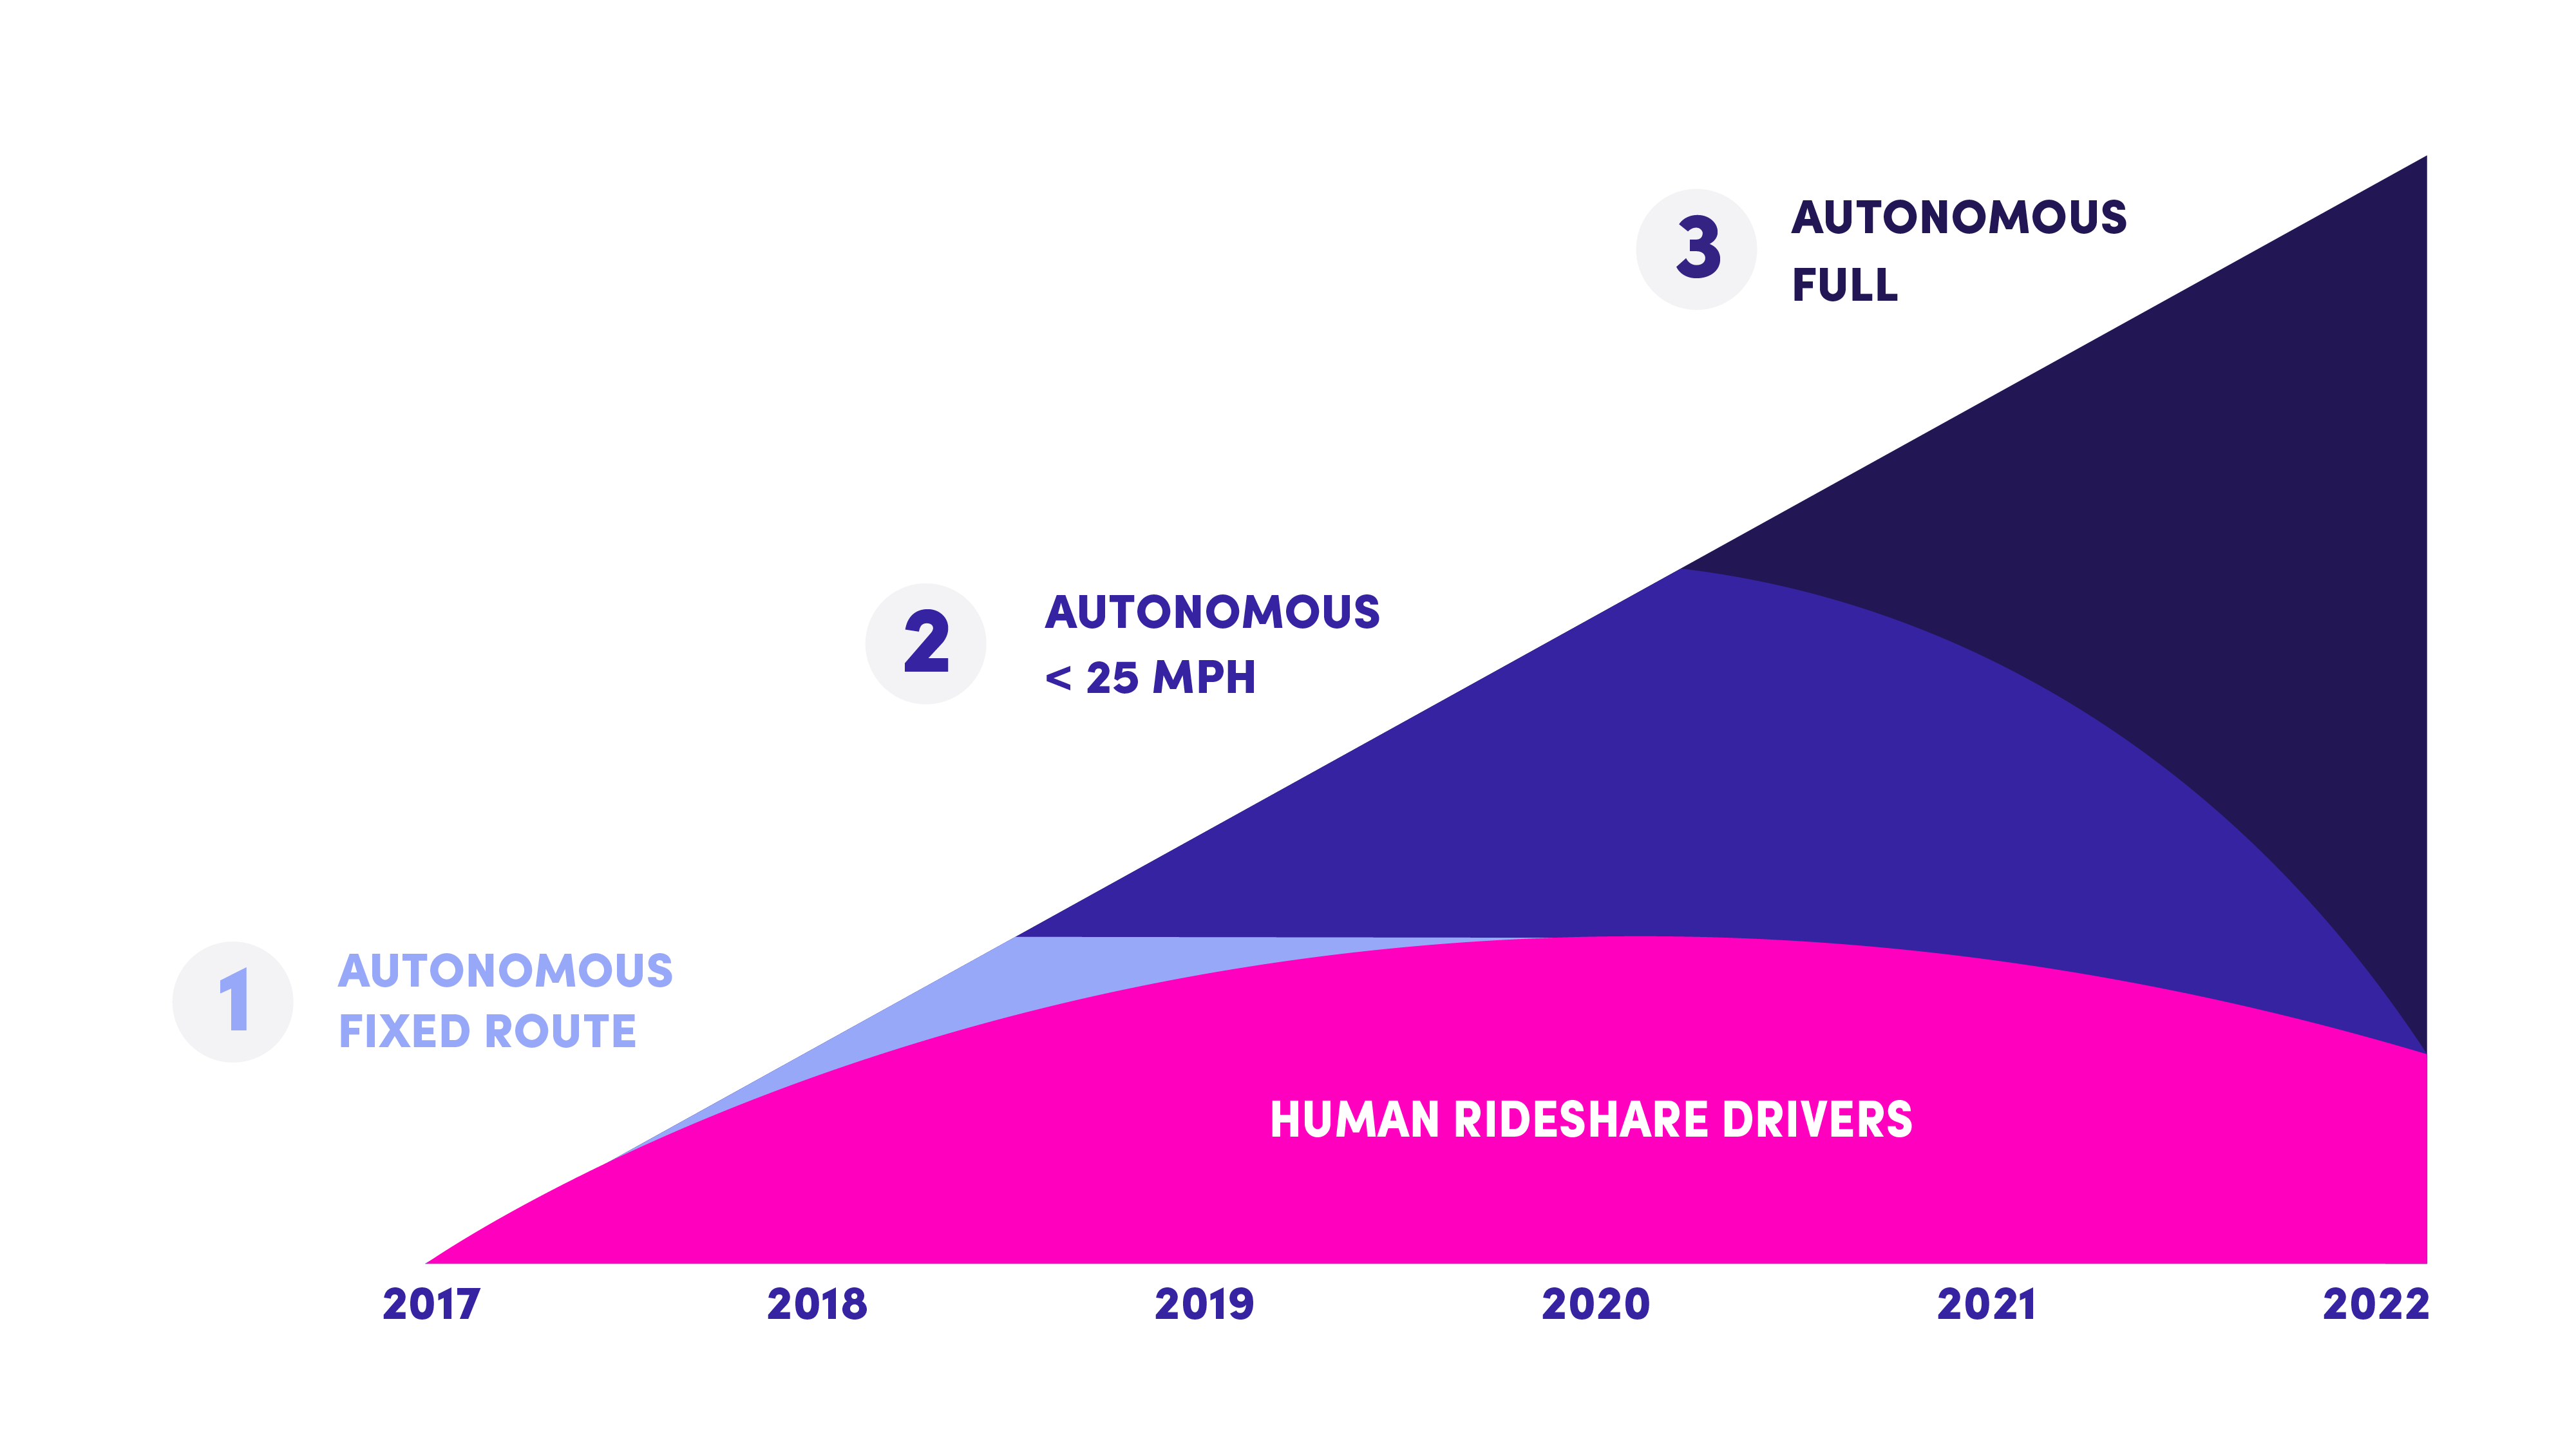 How Lyft sees human driver demand increasing with near-term autonomous advancements. Credit: Lyft.